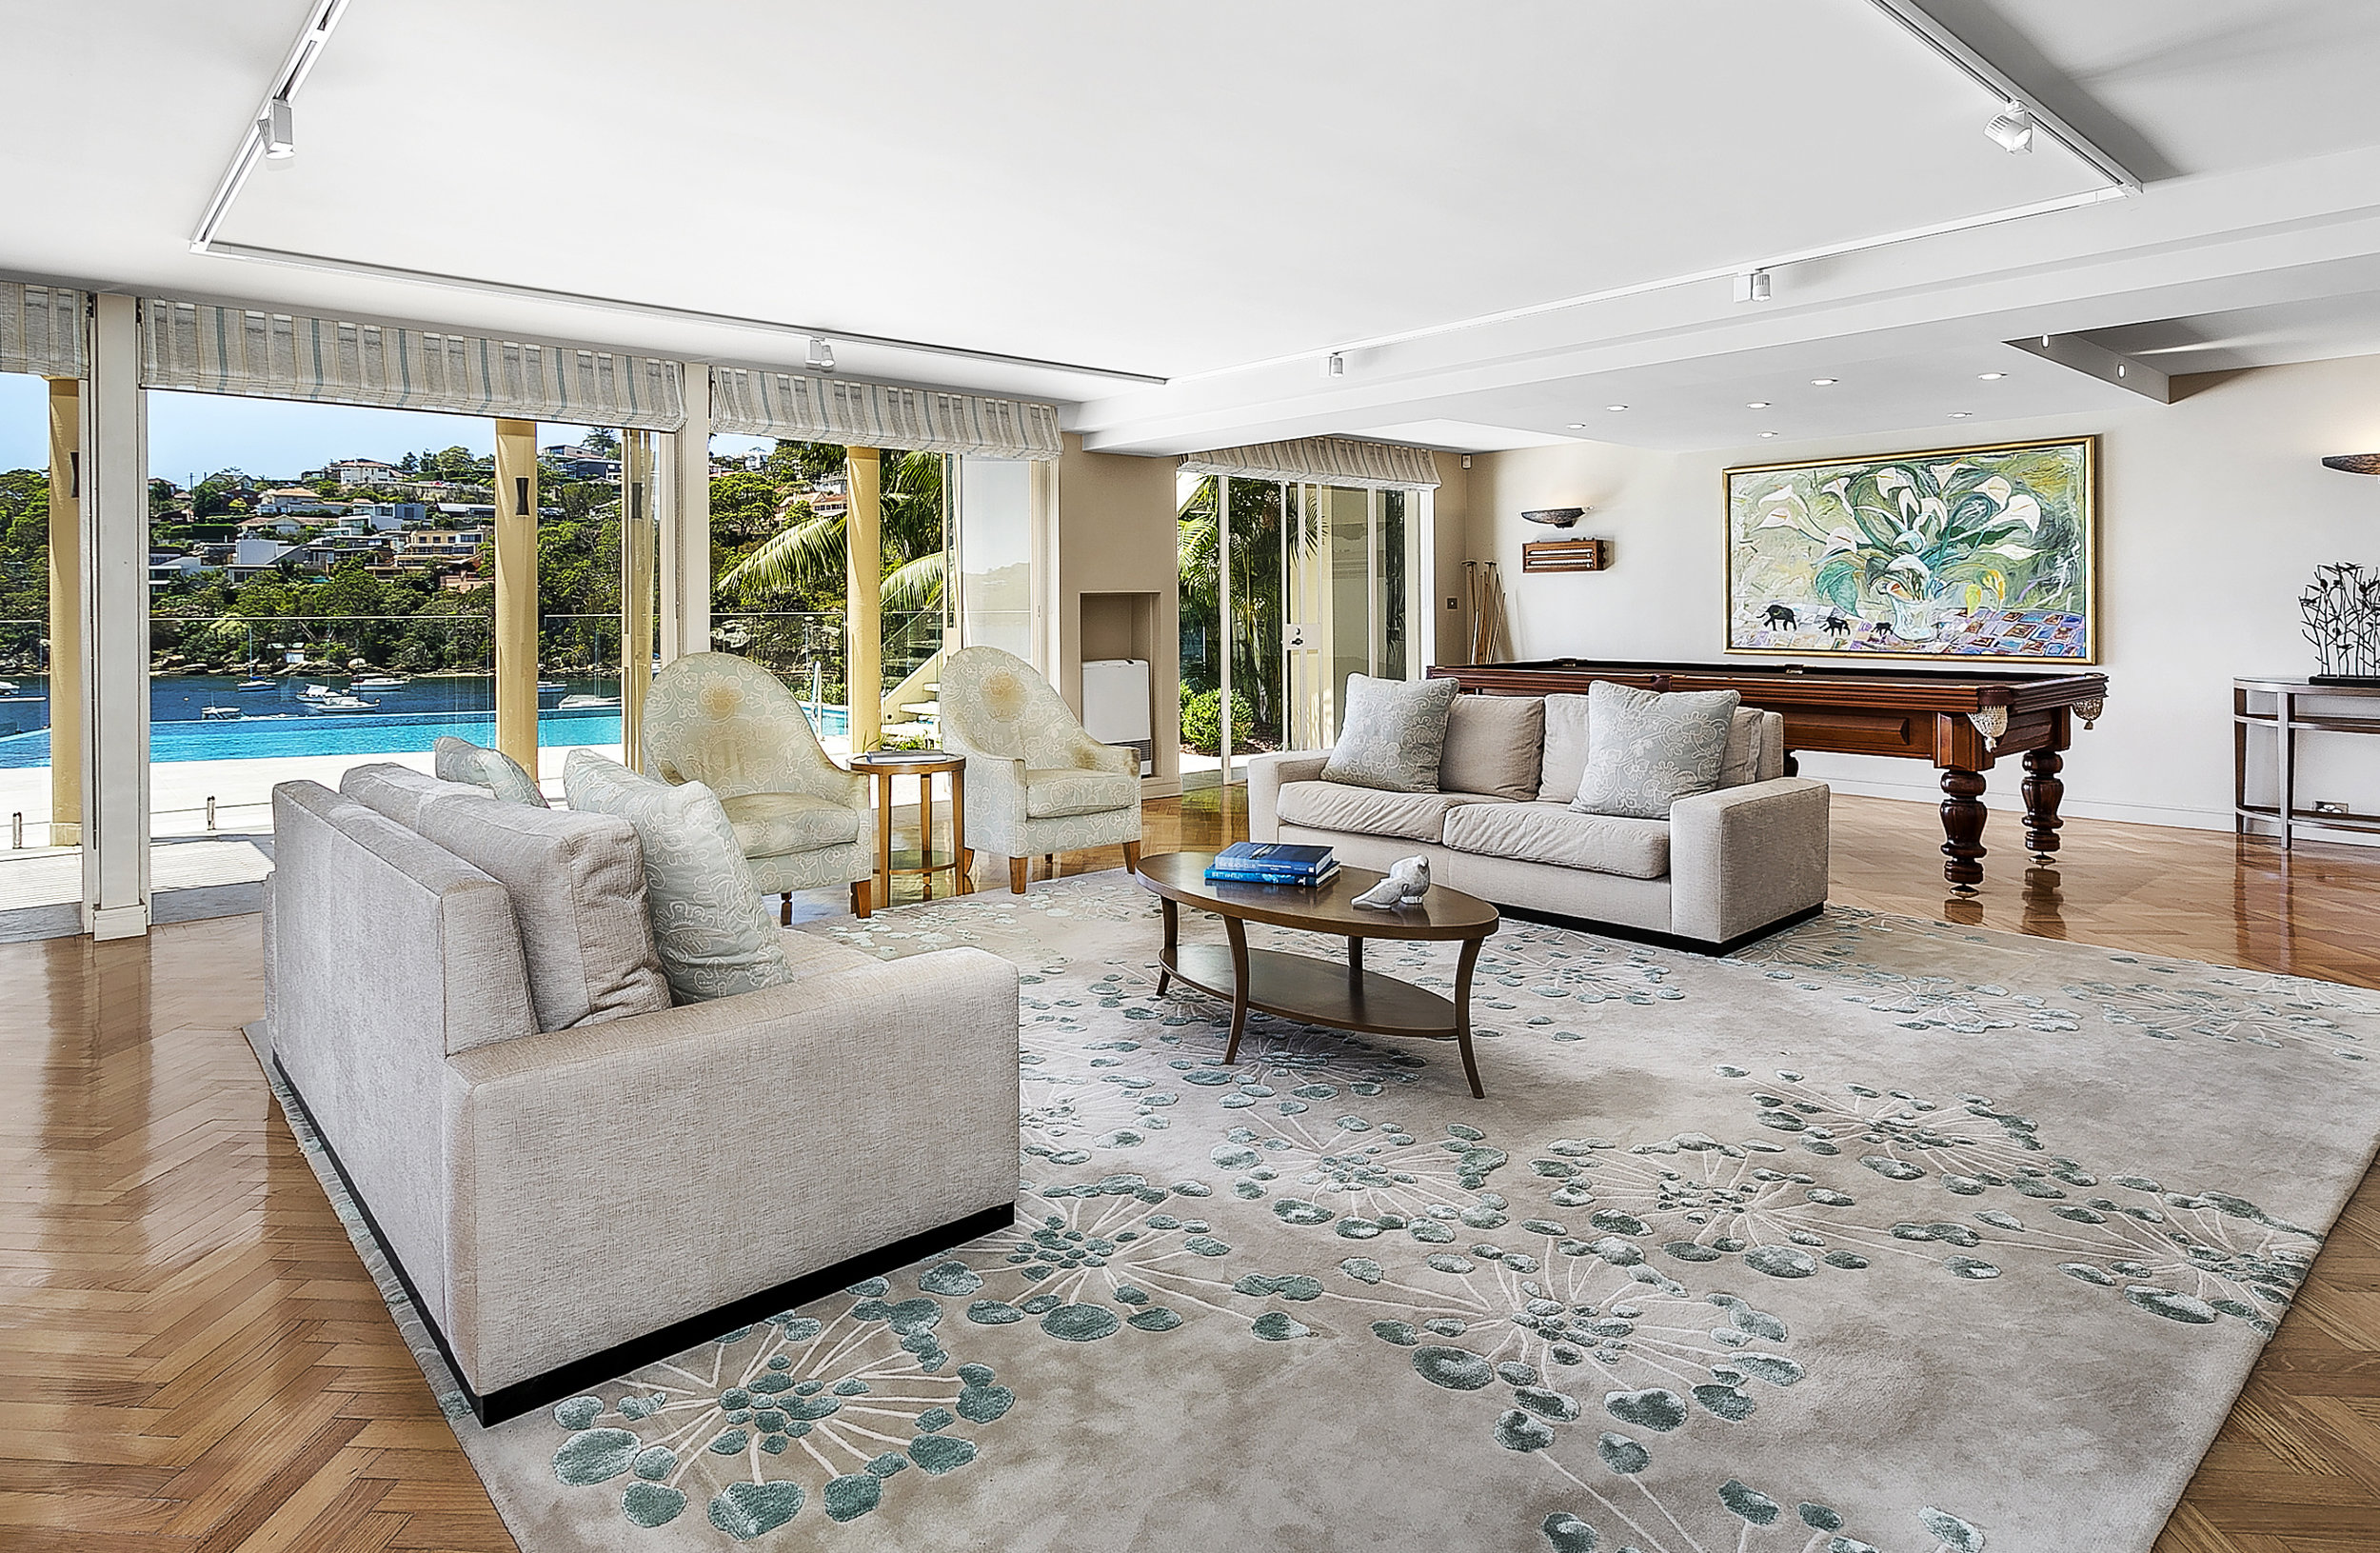 This home is the latest listing for Matthew Smythe, Principal of Belle Property Neutral Bay, who has achieved record prices on the lower north shore.